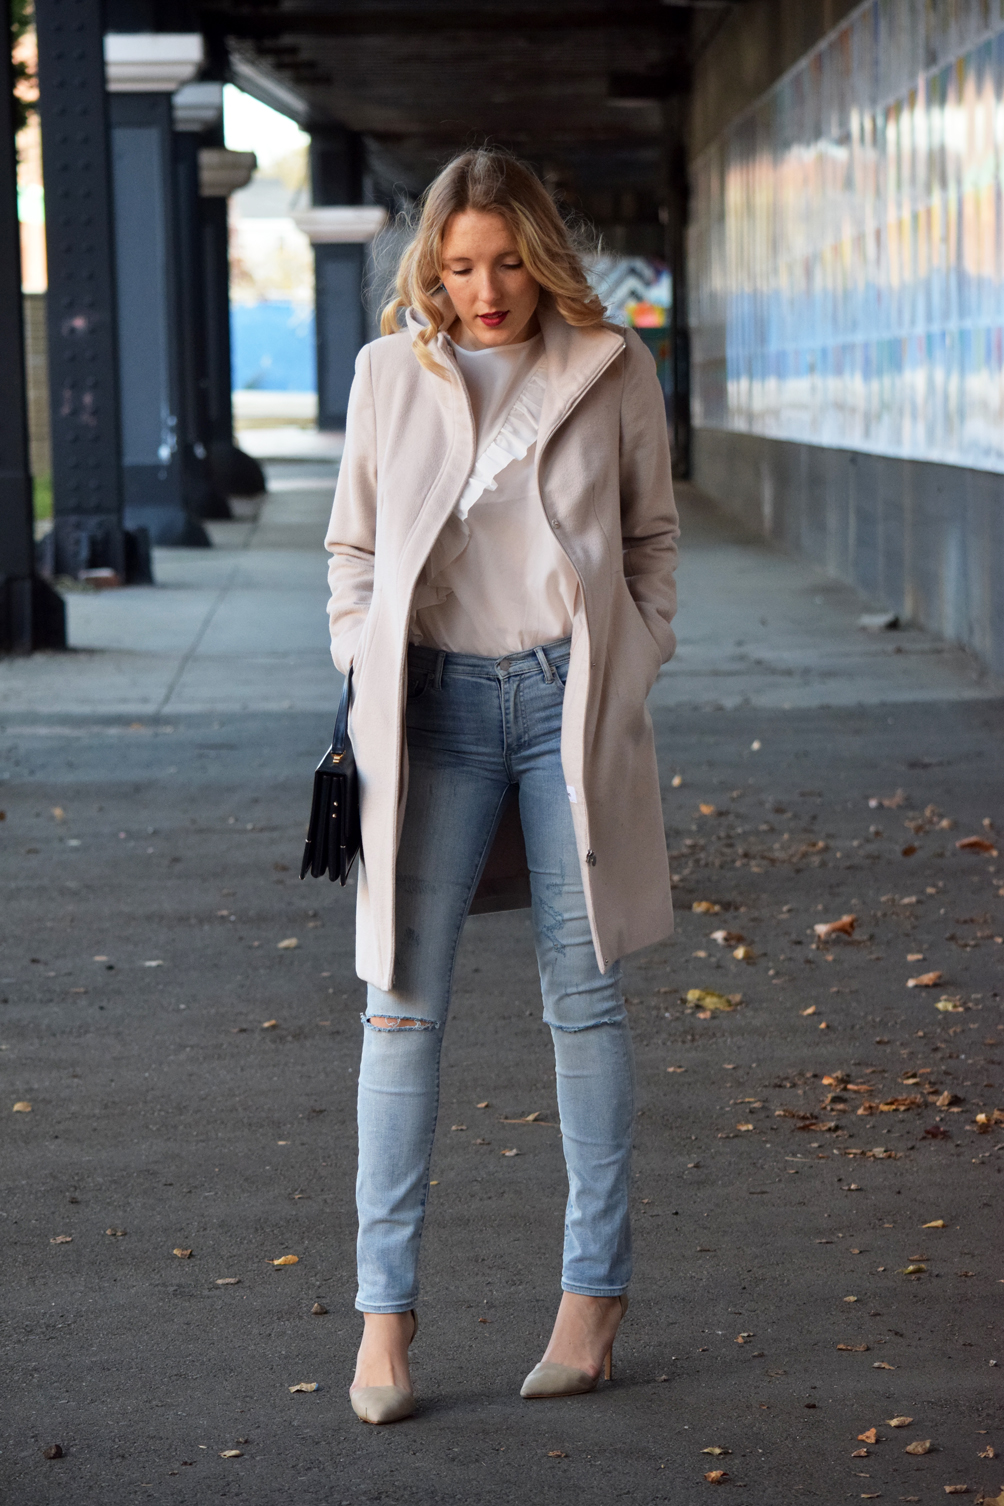 minimal and classic outfit ideas